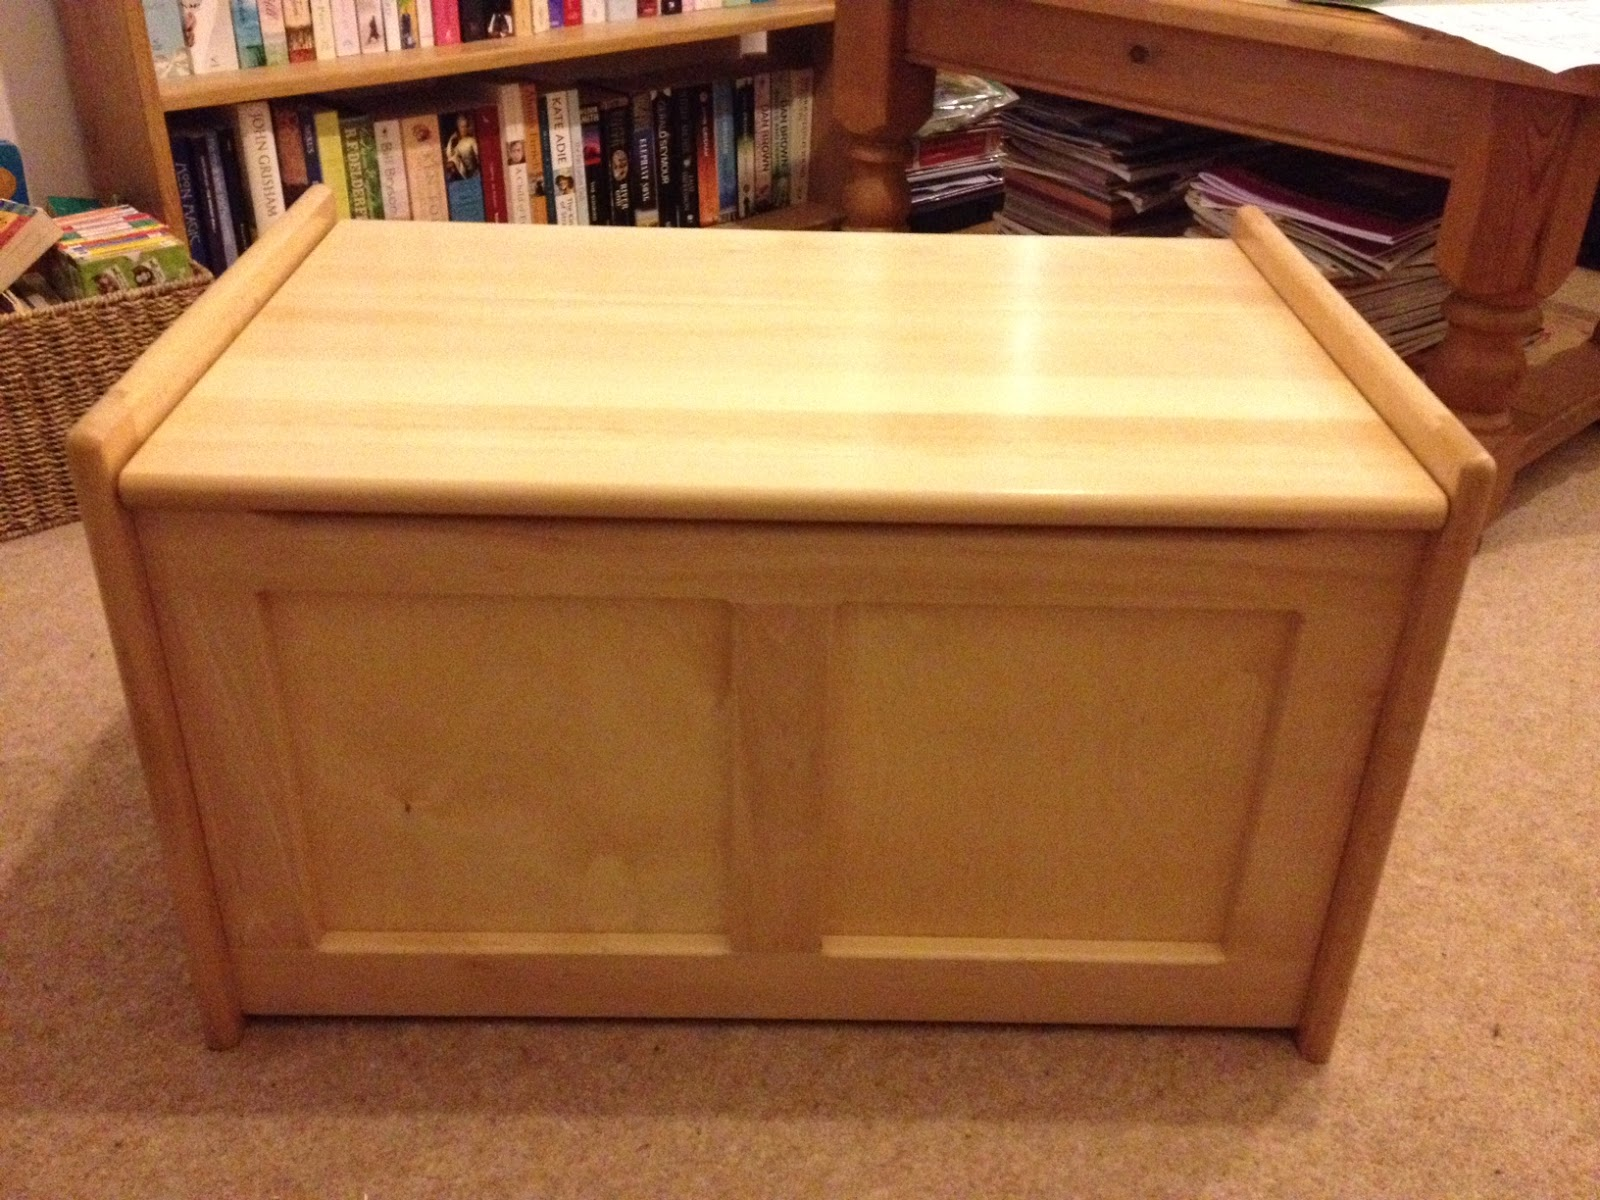 tidlo fsc natural toy box from john crane review sophia 39 s choice green family lifestyle. Black Bedroom Furniture Sets. Home Design Ideas